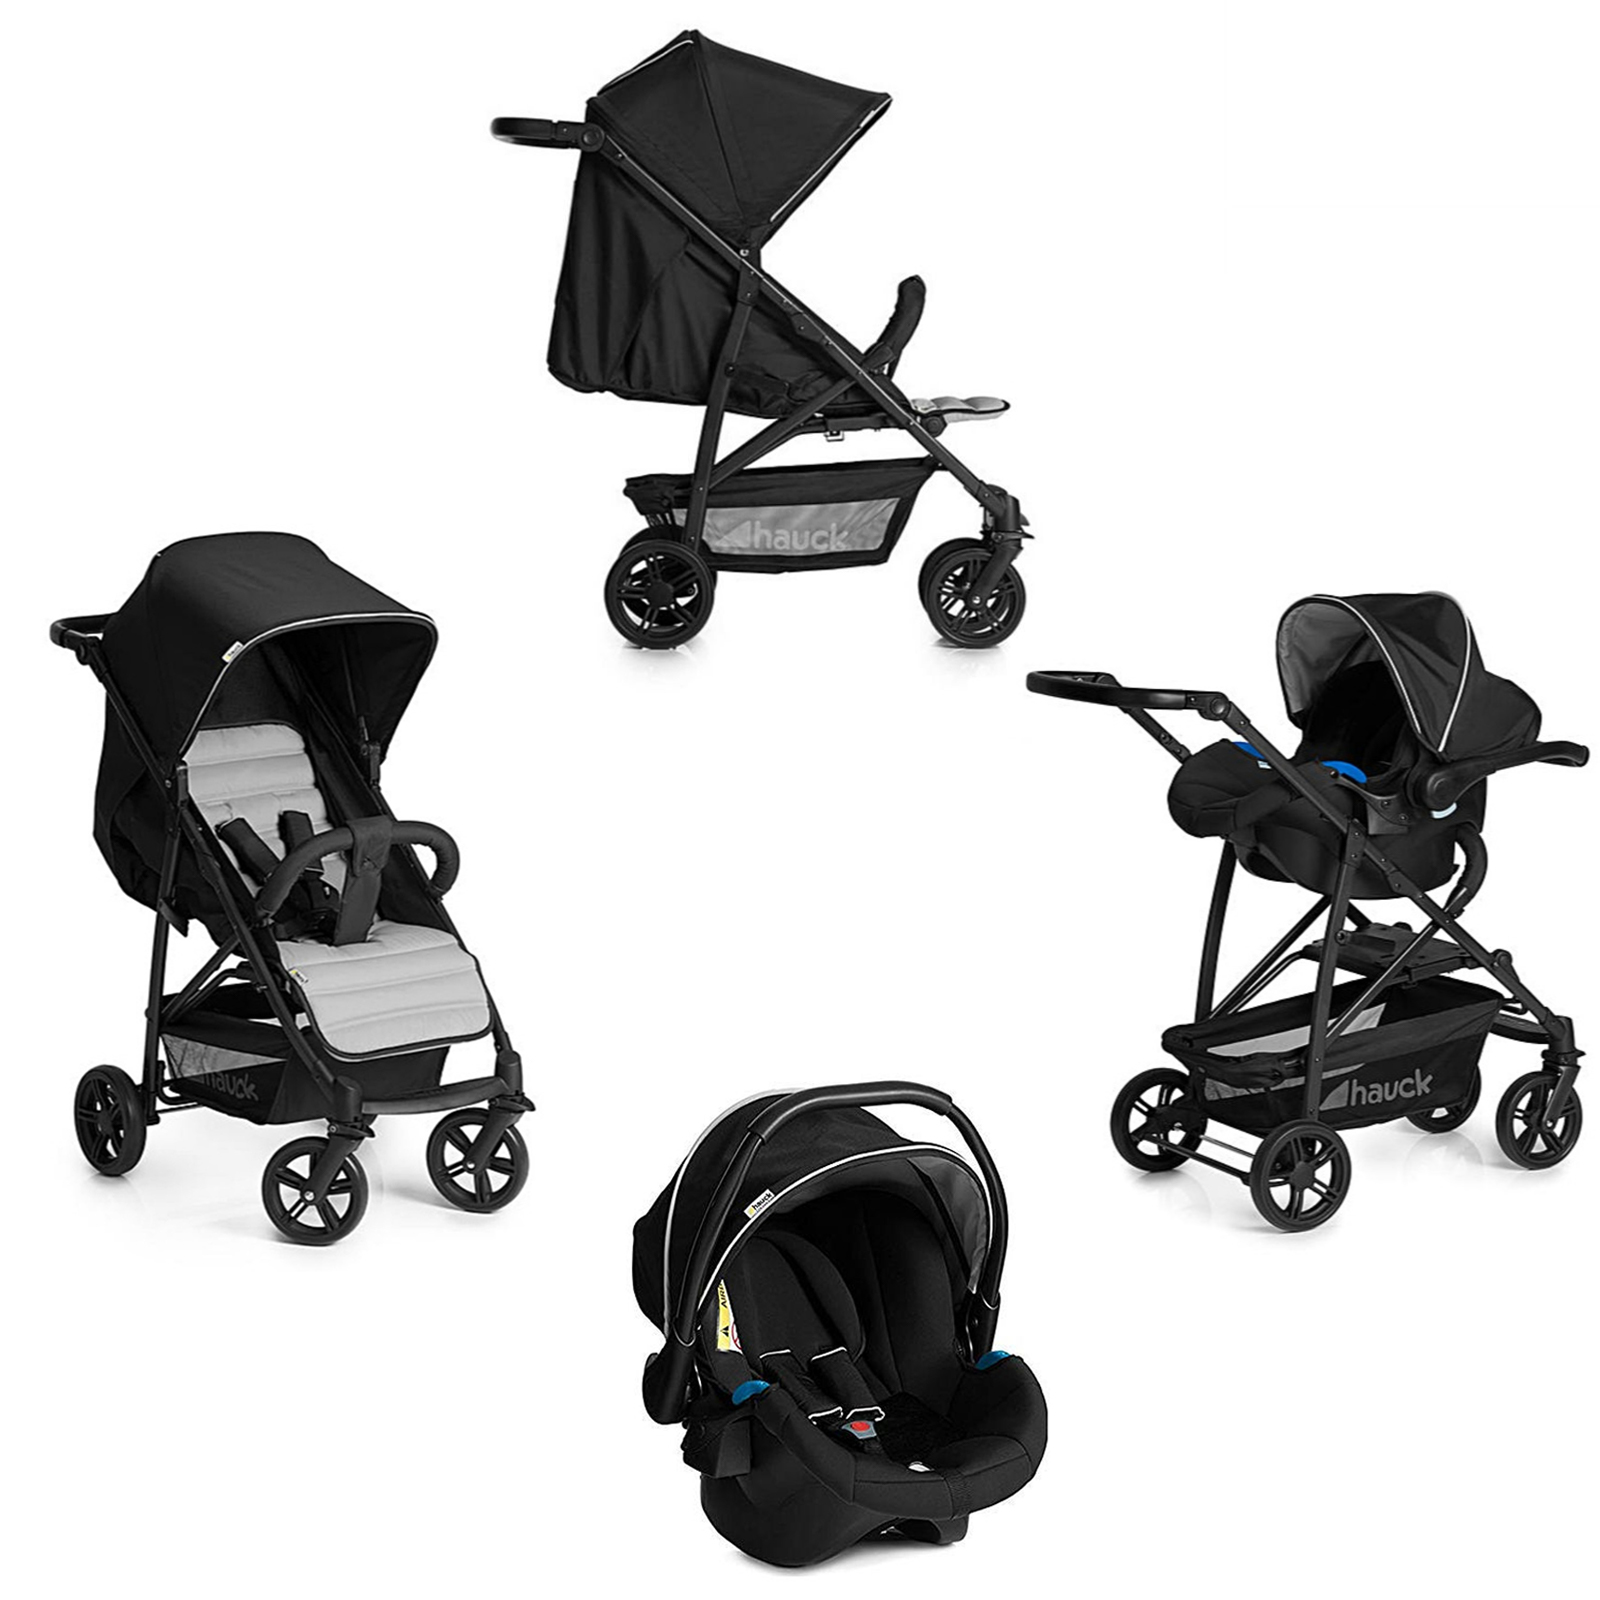 Stroller Travel System Ebay Details About New Folding Pushchair Car Seat Travel System With Rain Cover